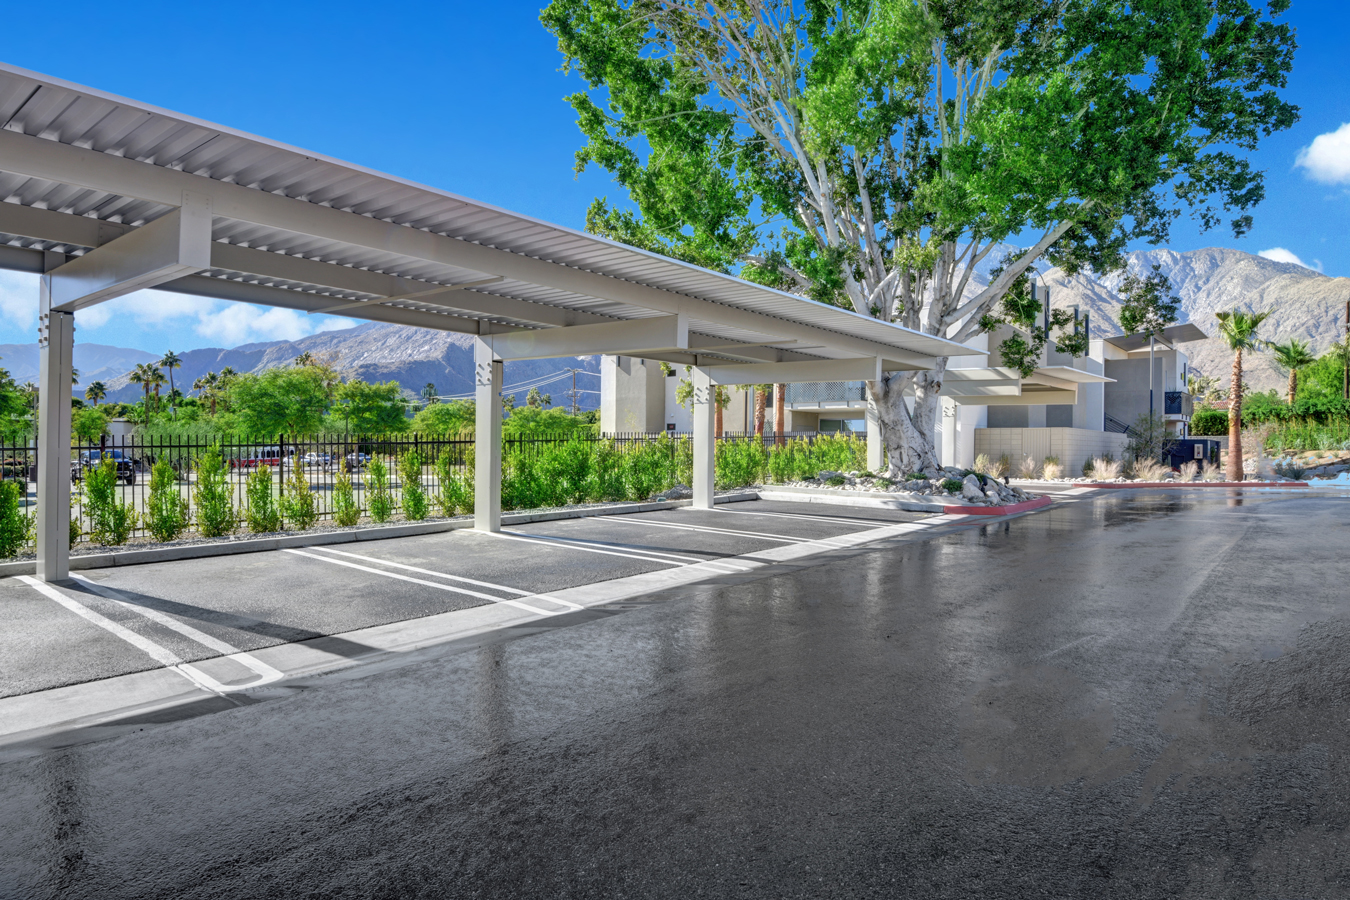 covered-carport-detail-to-mountains